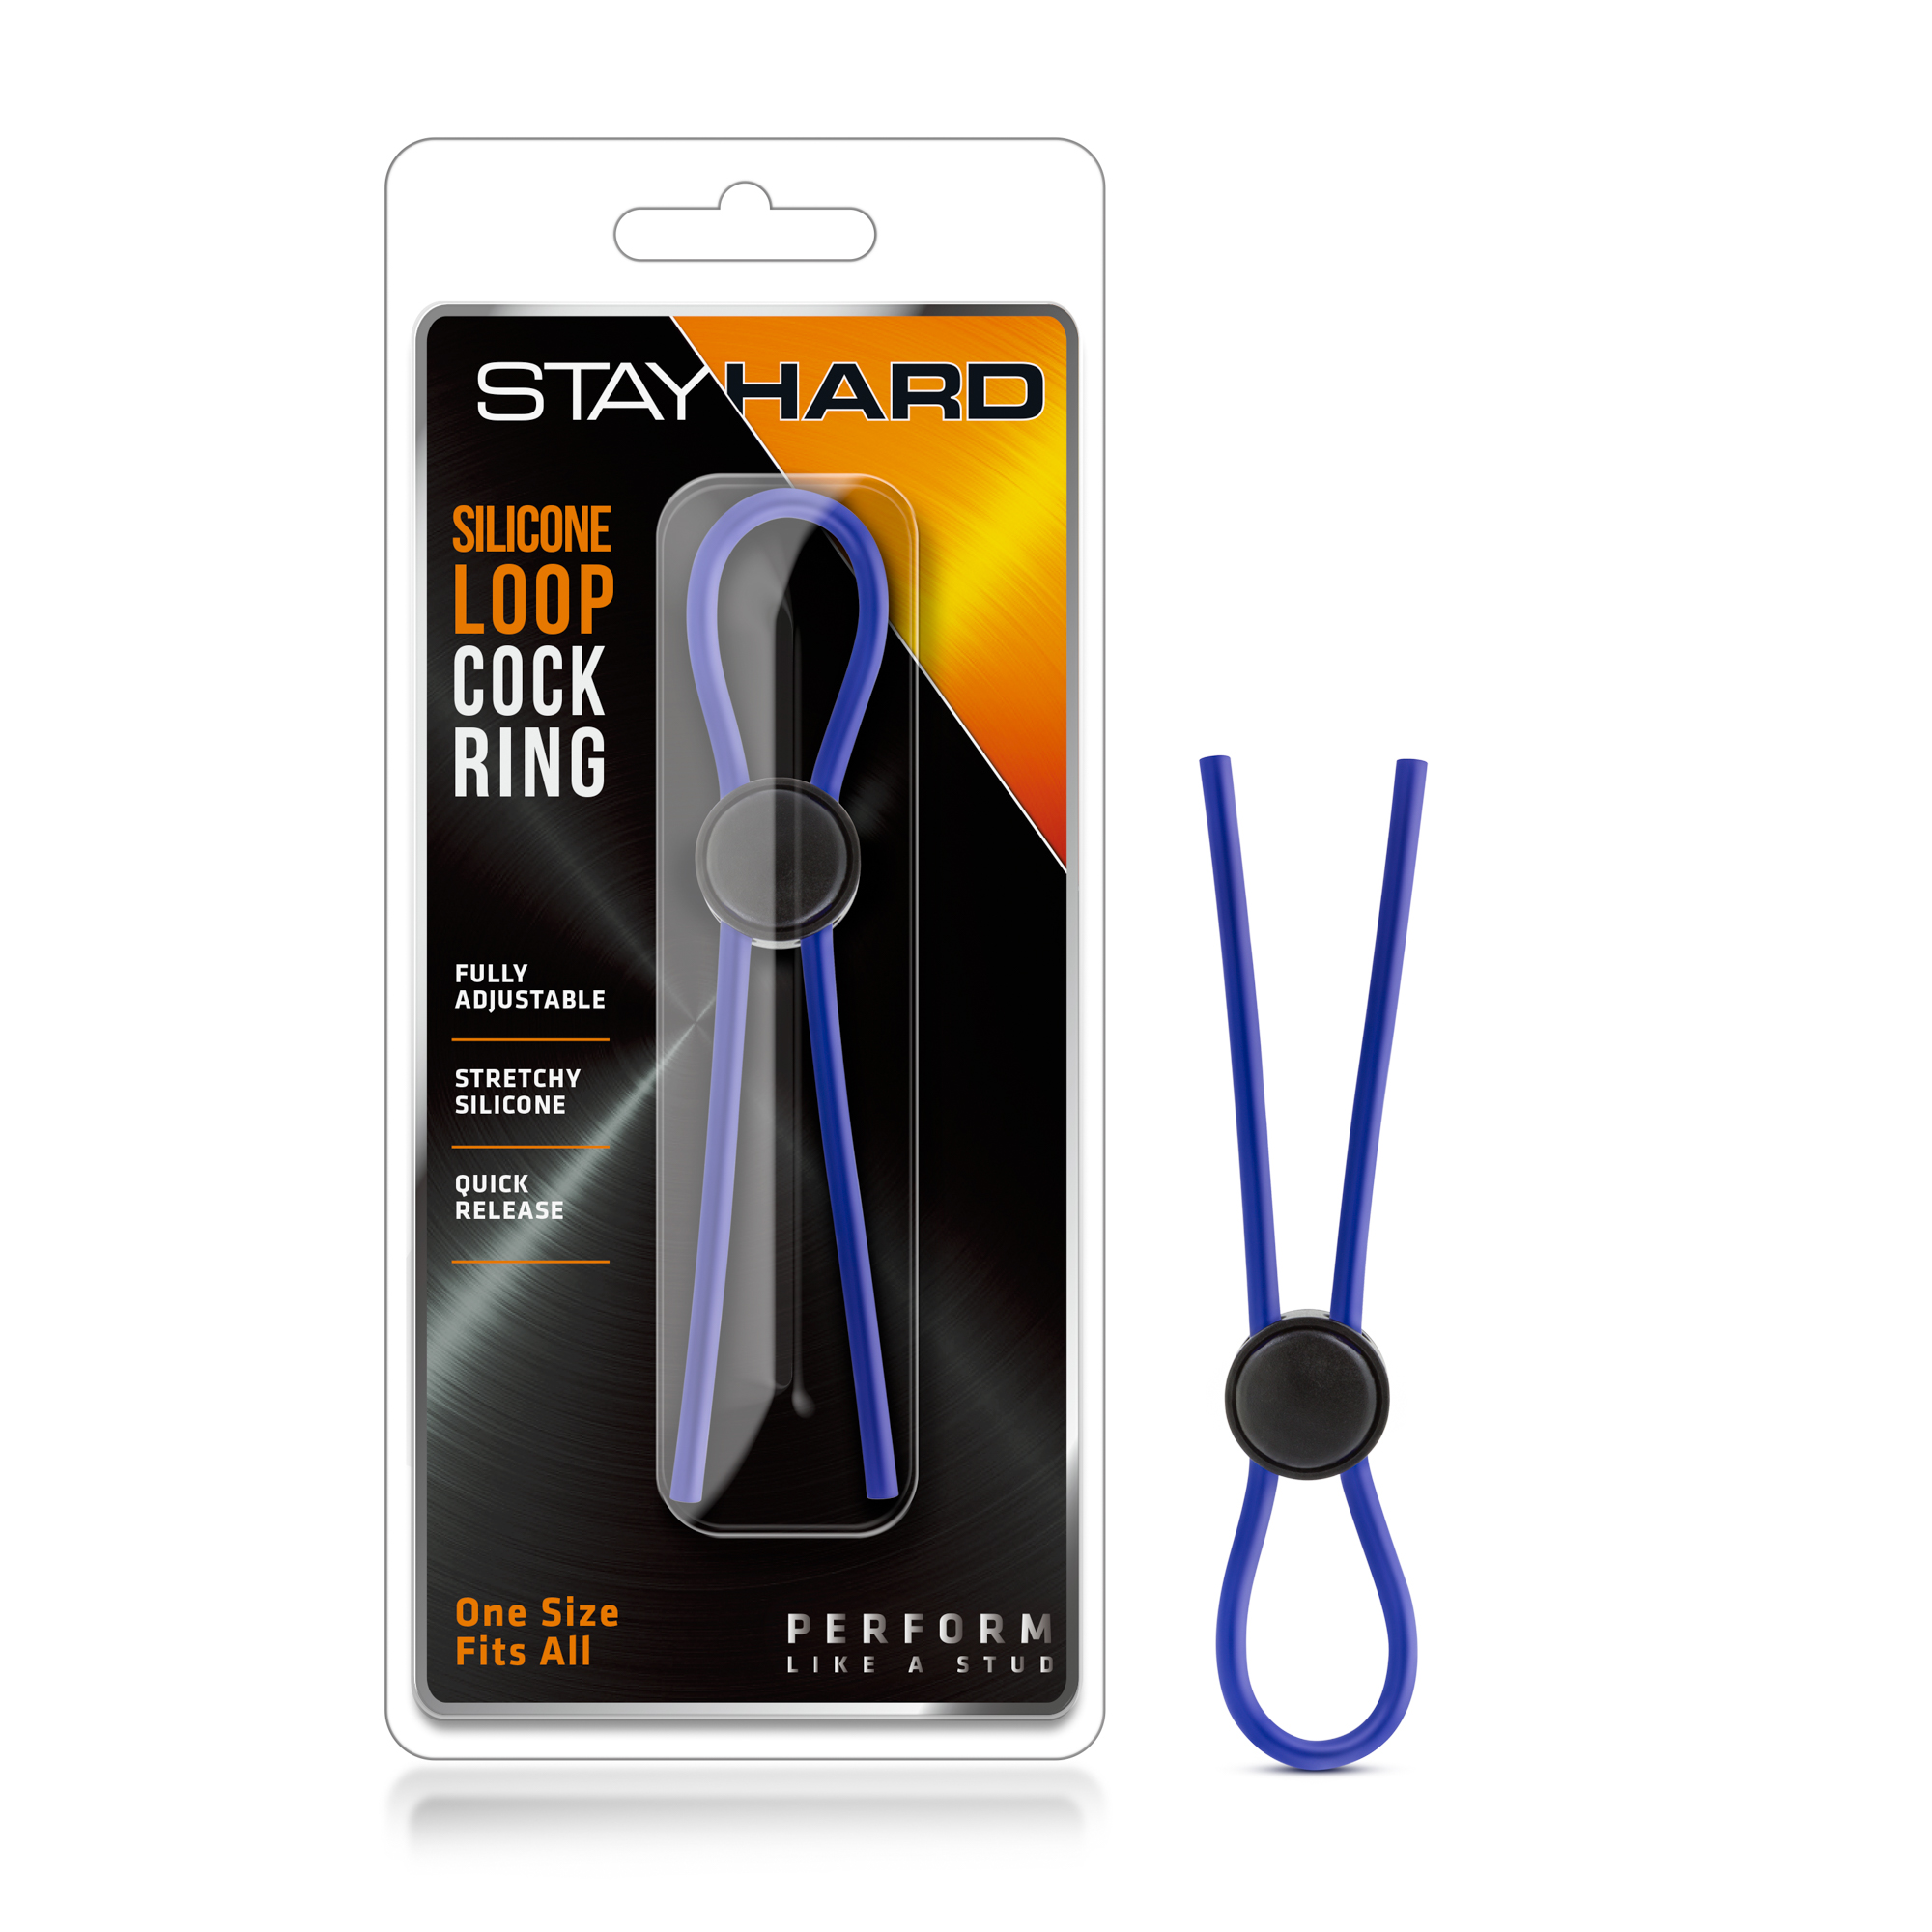 Stay Hard - Silicone Loop Cock Ring - Blue